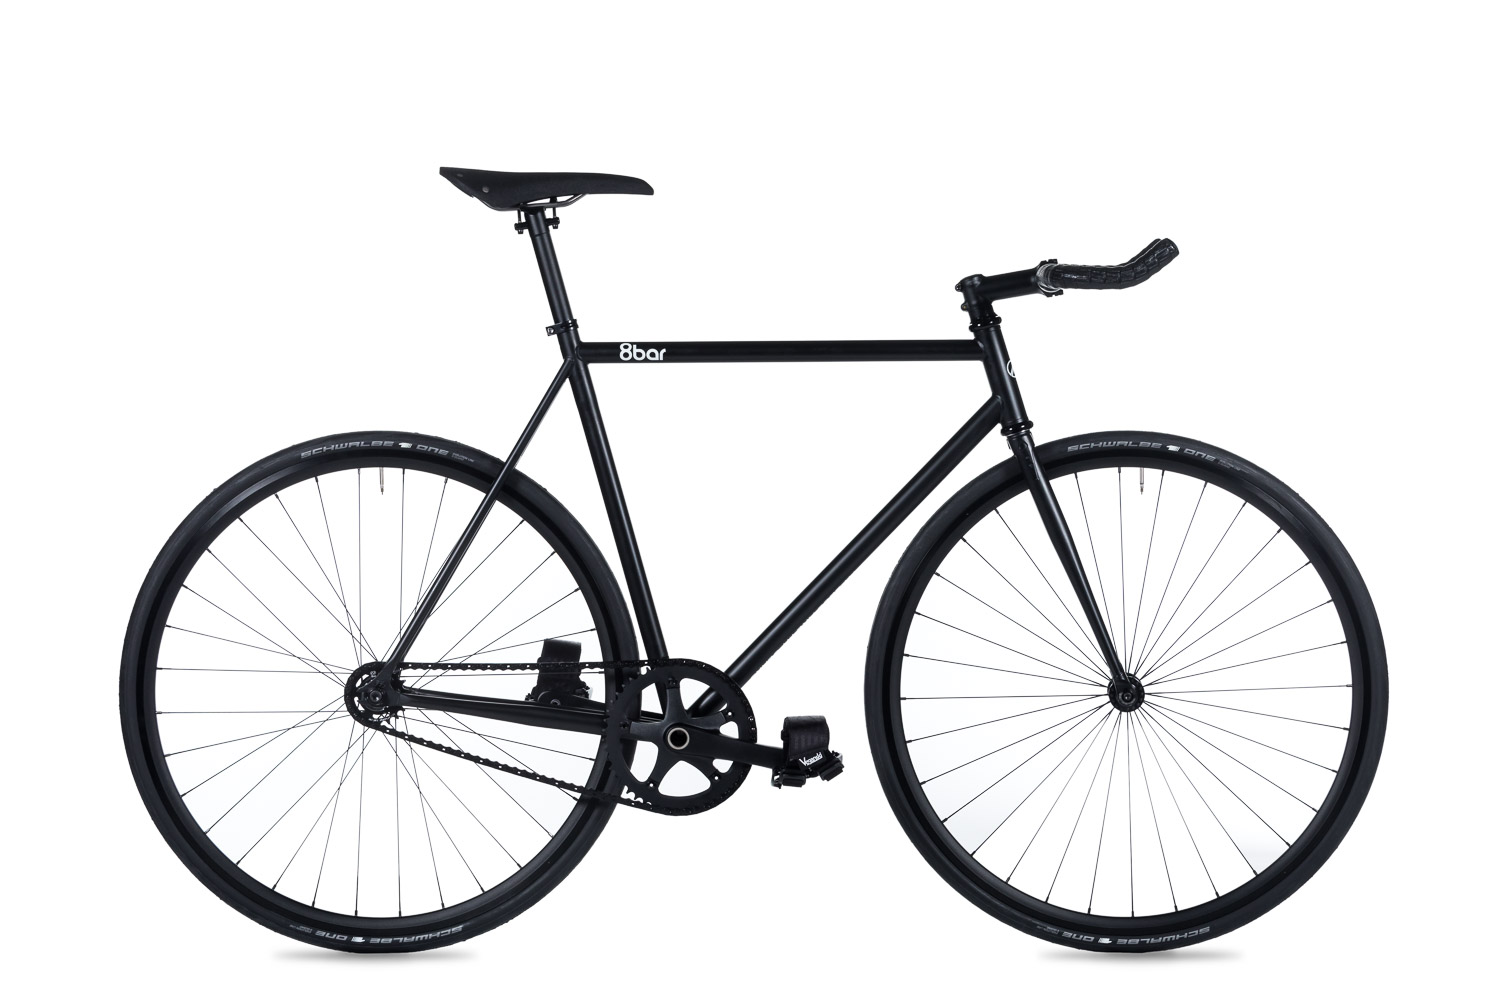 8bar-complete-bike-fhain-steel-pro-urban-bull-black-studio-fixed-gear-fixie-lr-1